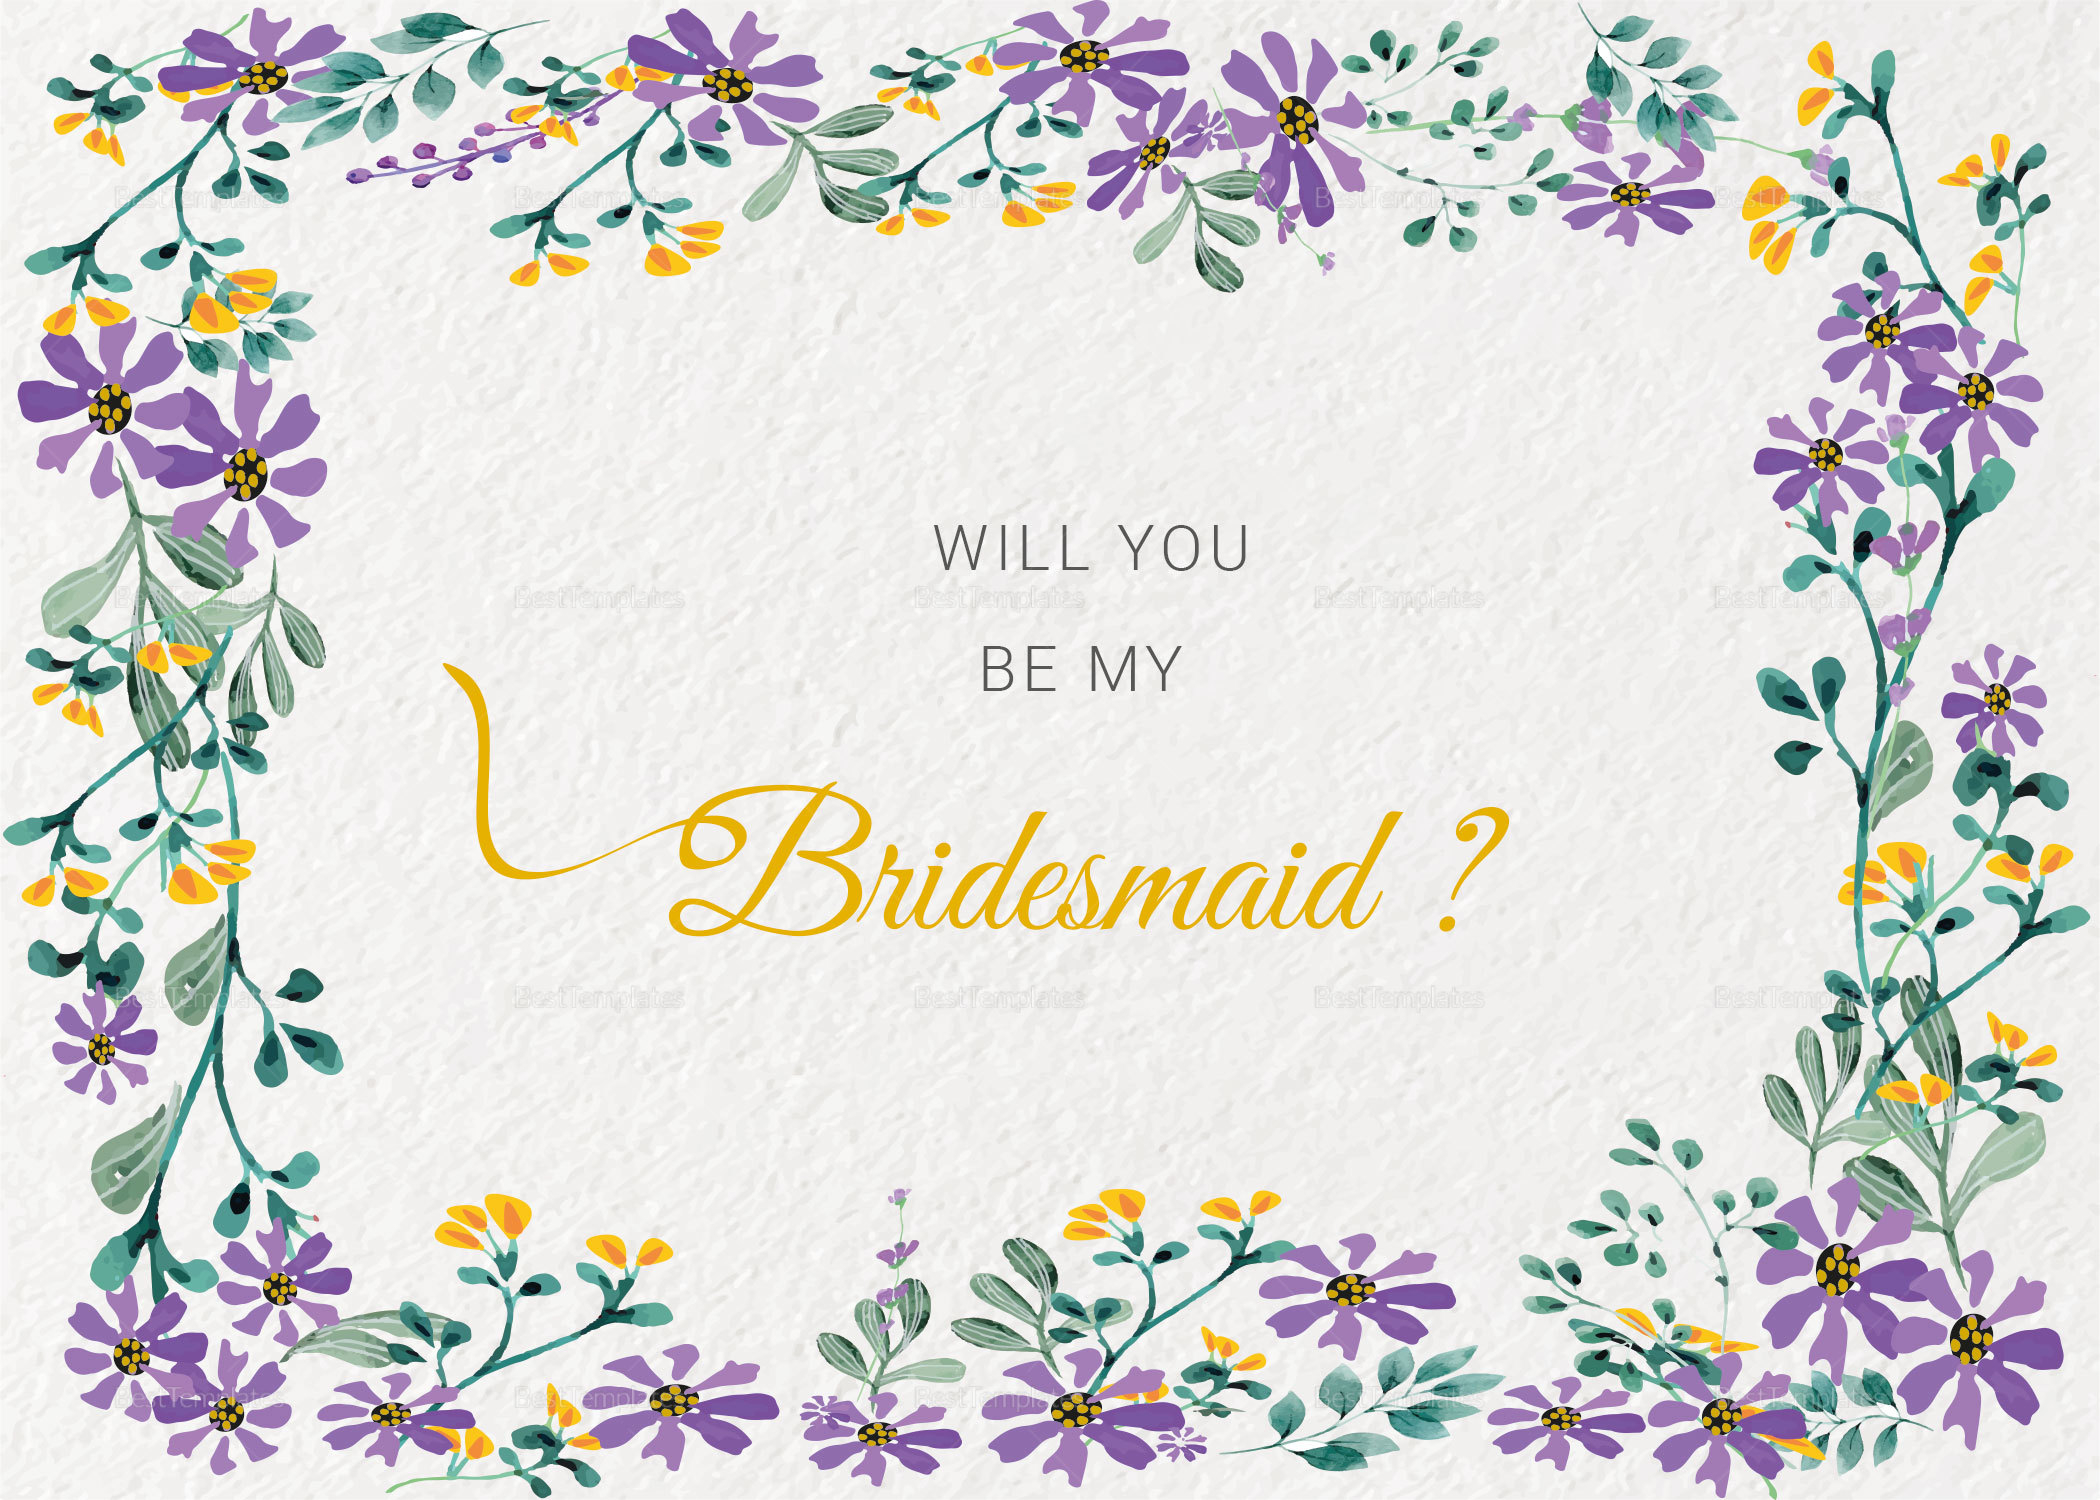 Garden Wedding Will You Be My Bridesmaid Card